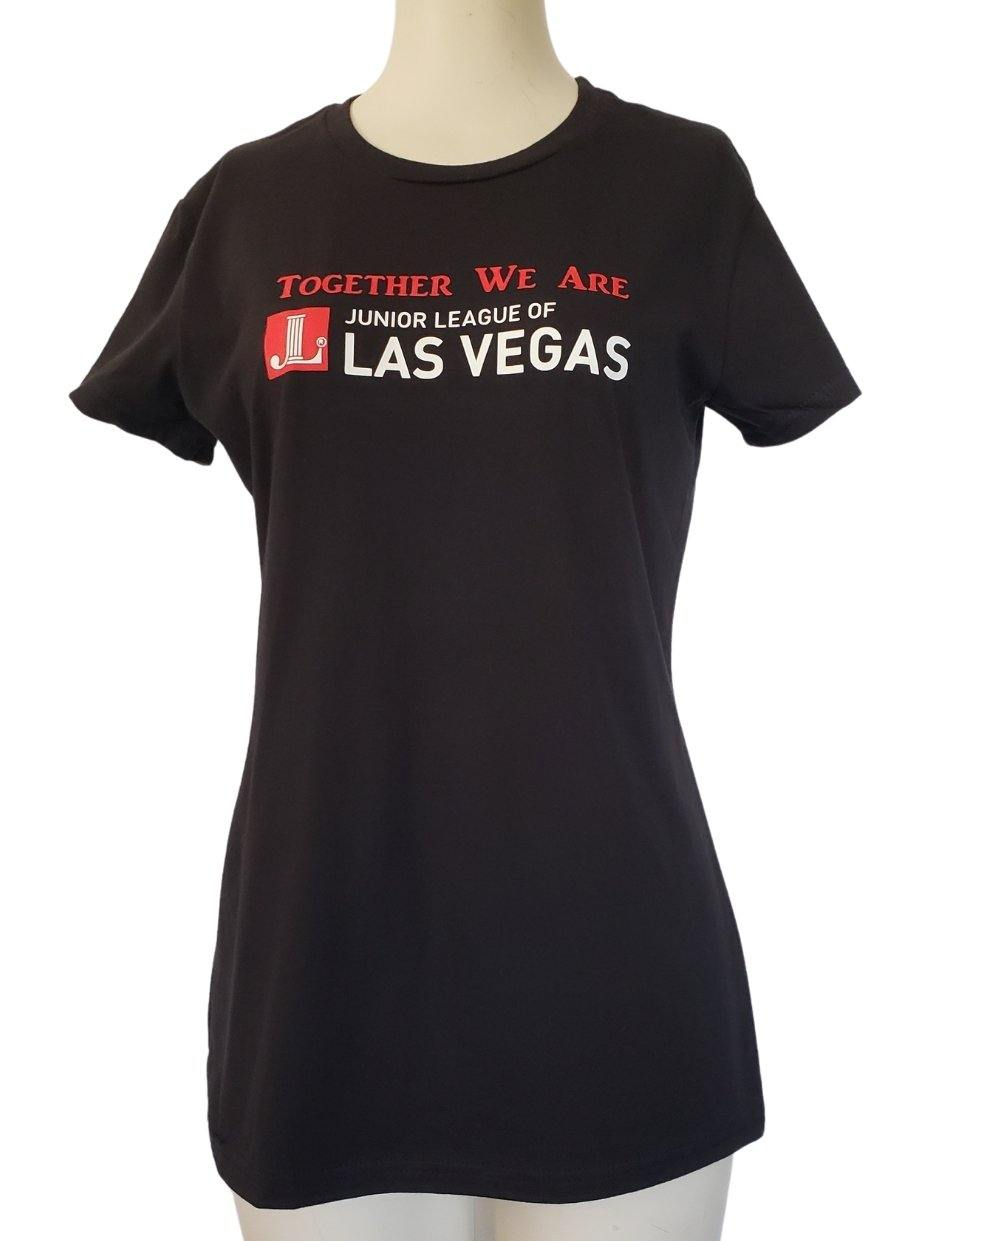 Junior League of Las Vegas Tshirt